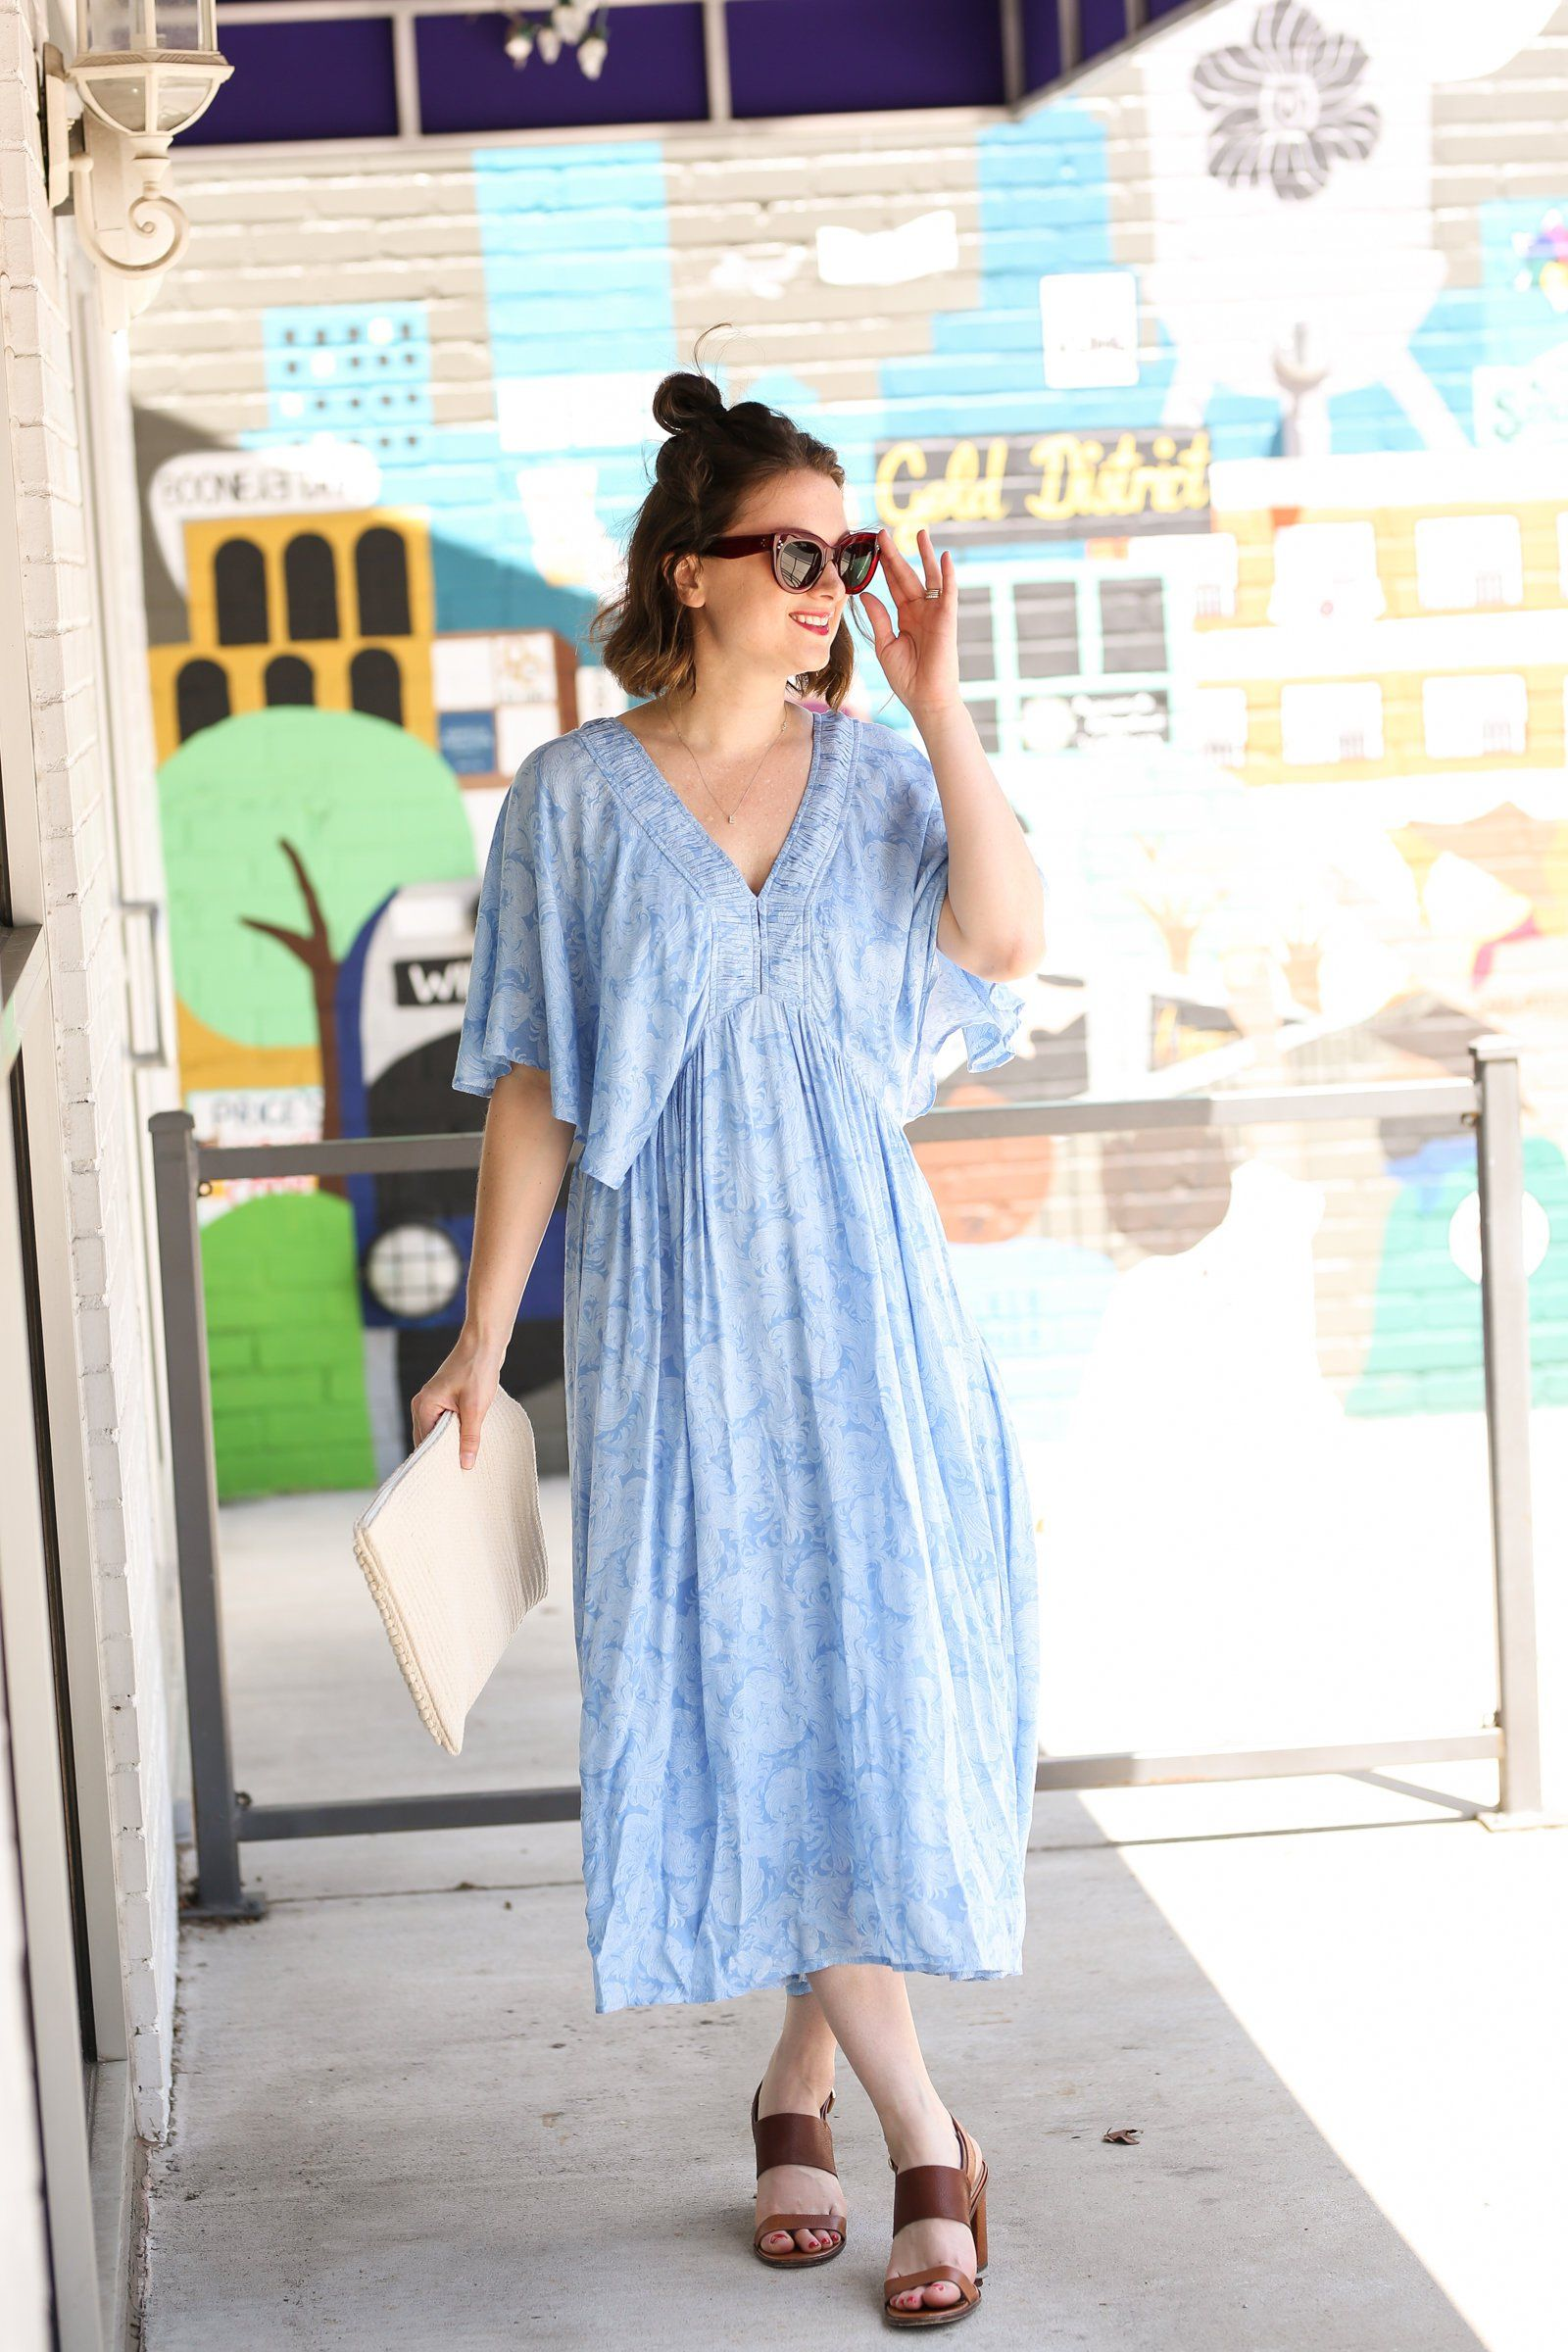 e05386495fca A Blue Caftan Dress for the 4th of July